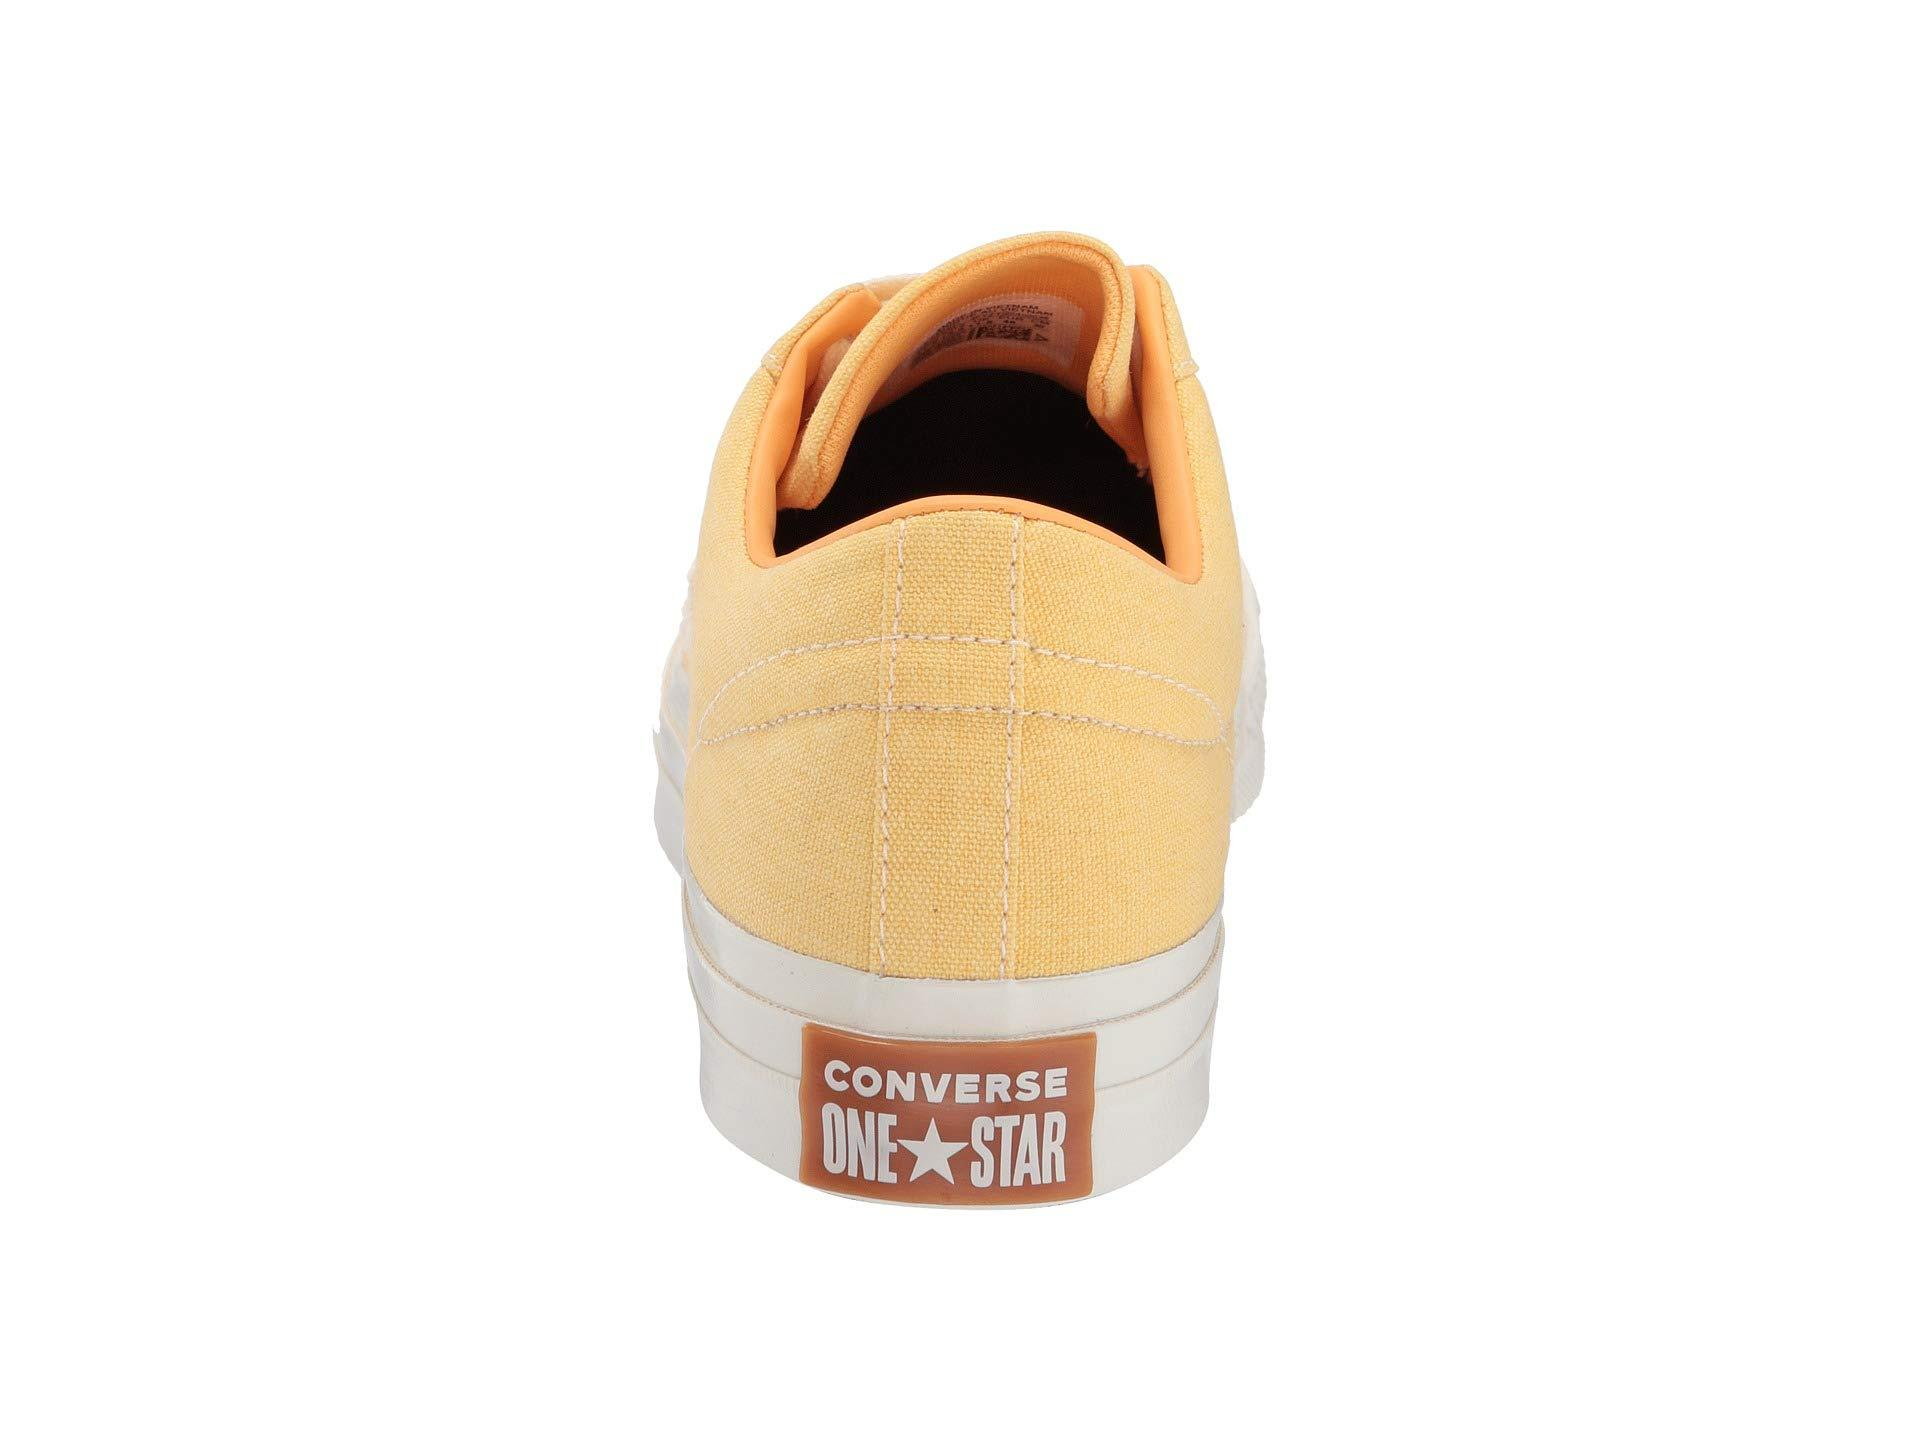 cae0756bc1e64 Converse One Star Sunbaked - Ox (turf Orange bleached Coral egret) Classic  Shoes - Lyst